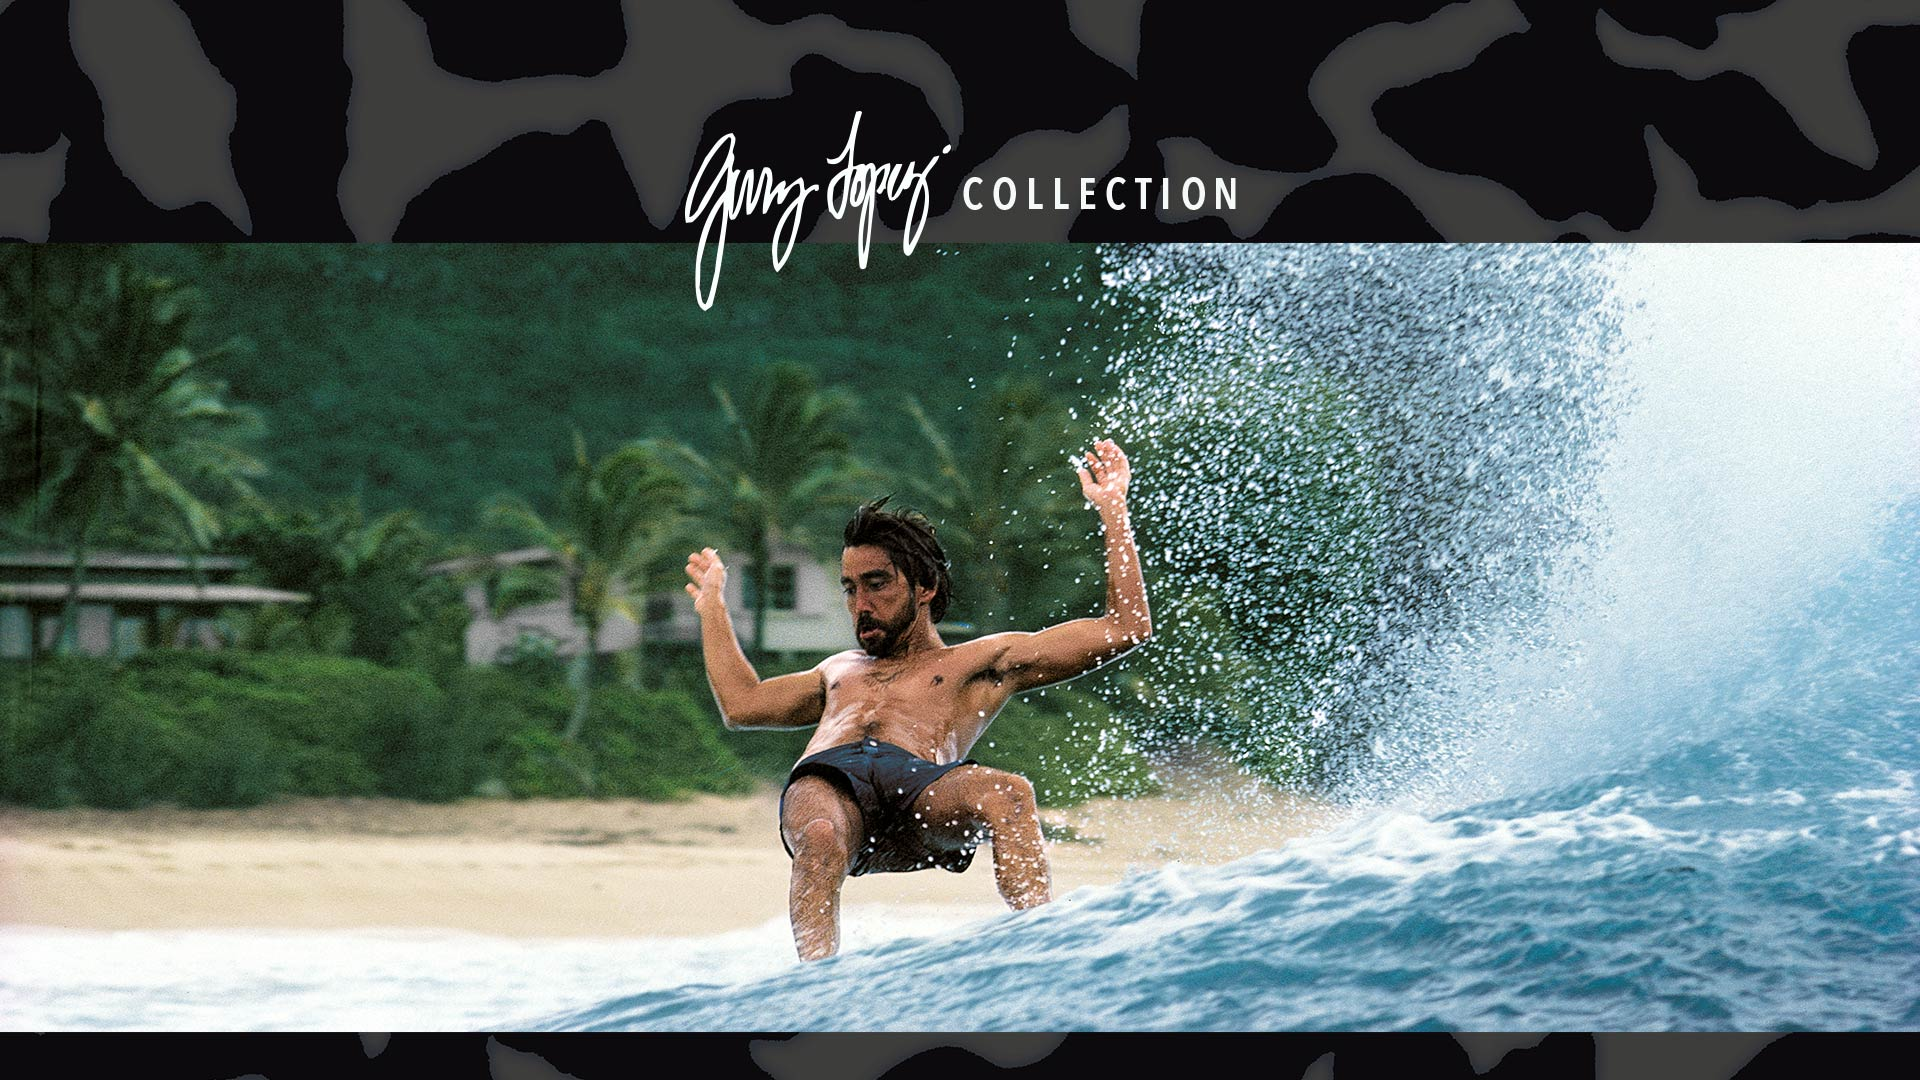 Gerry Lopez Collection